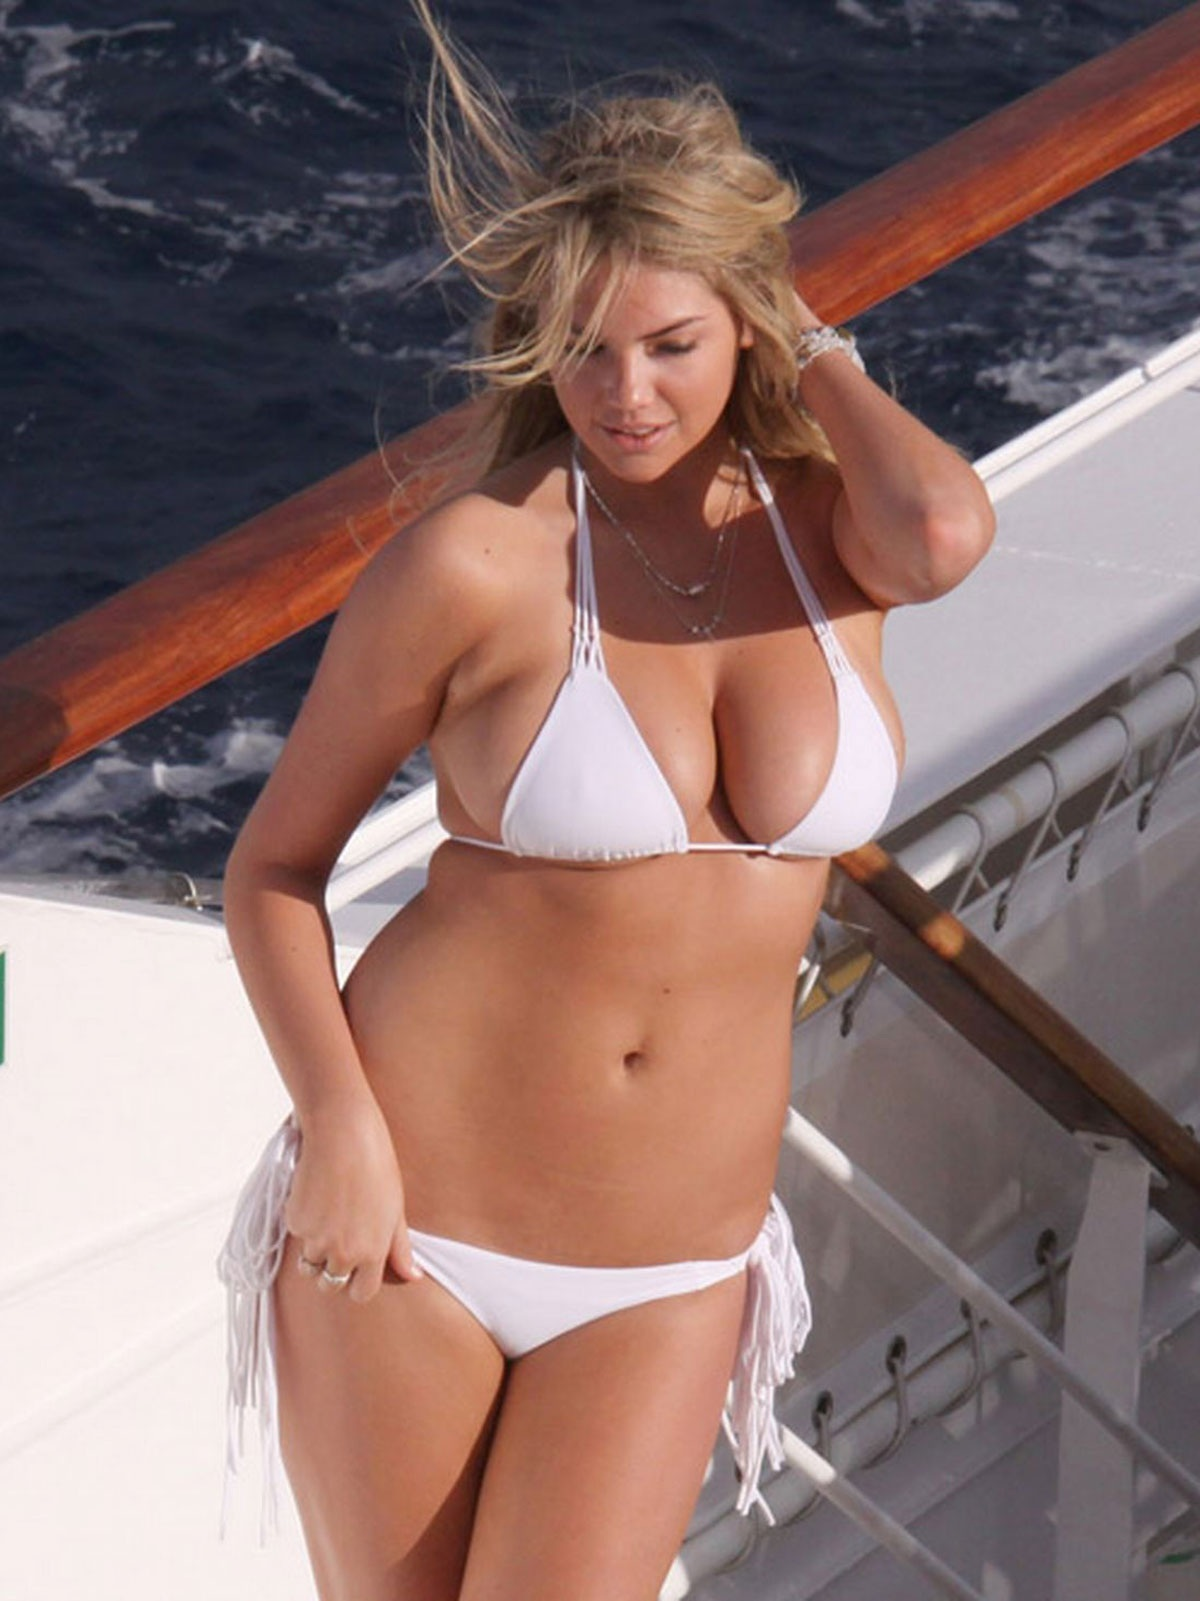 Kate Upton In Bikini Photoshoot For Sports Illustrated Magazine In Antarctica Kate Upton